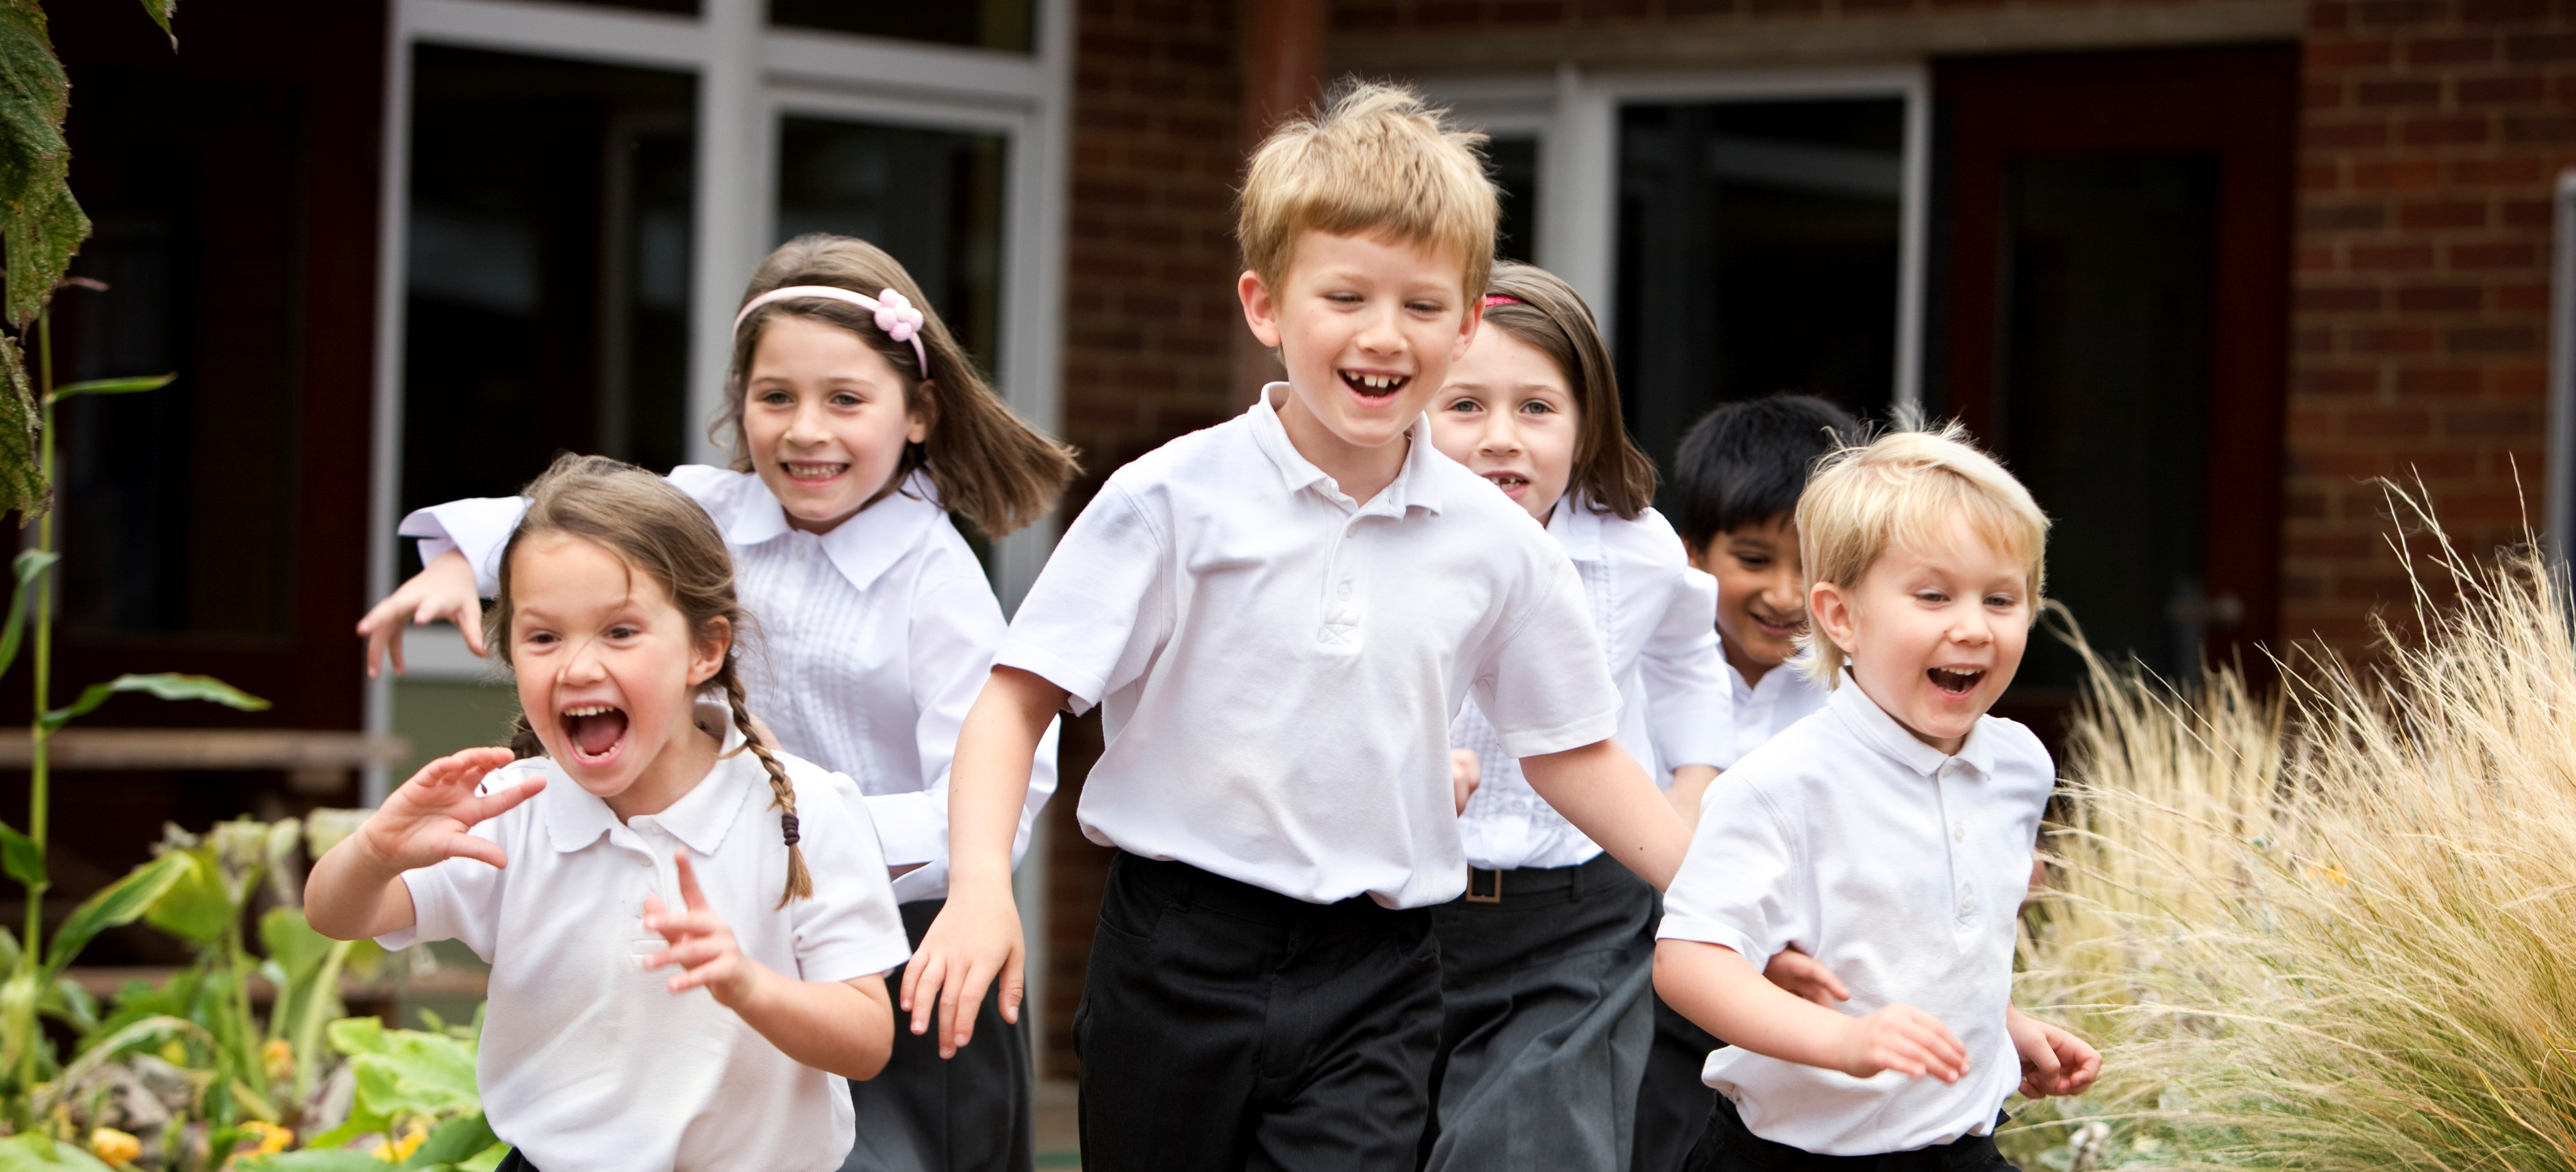 Smiling students running outside.